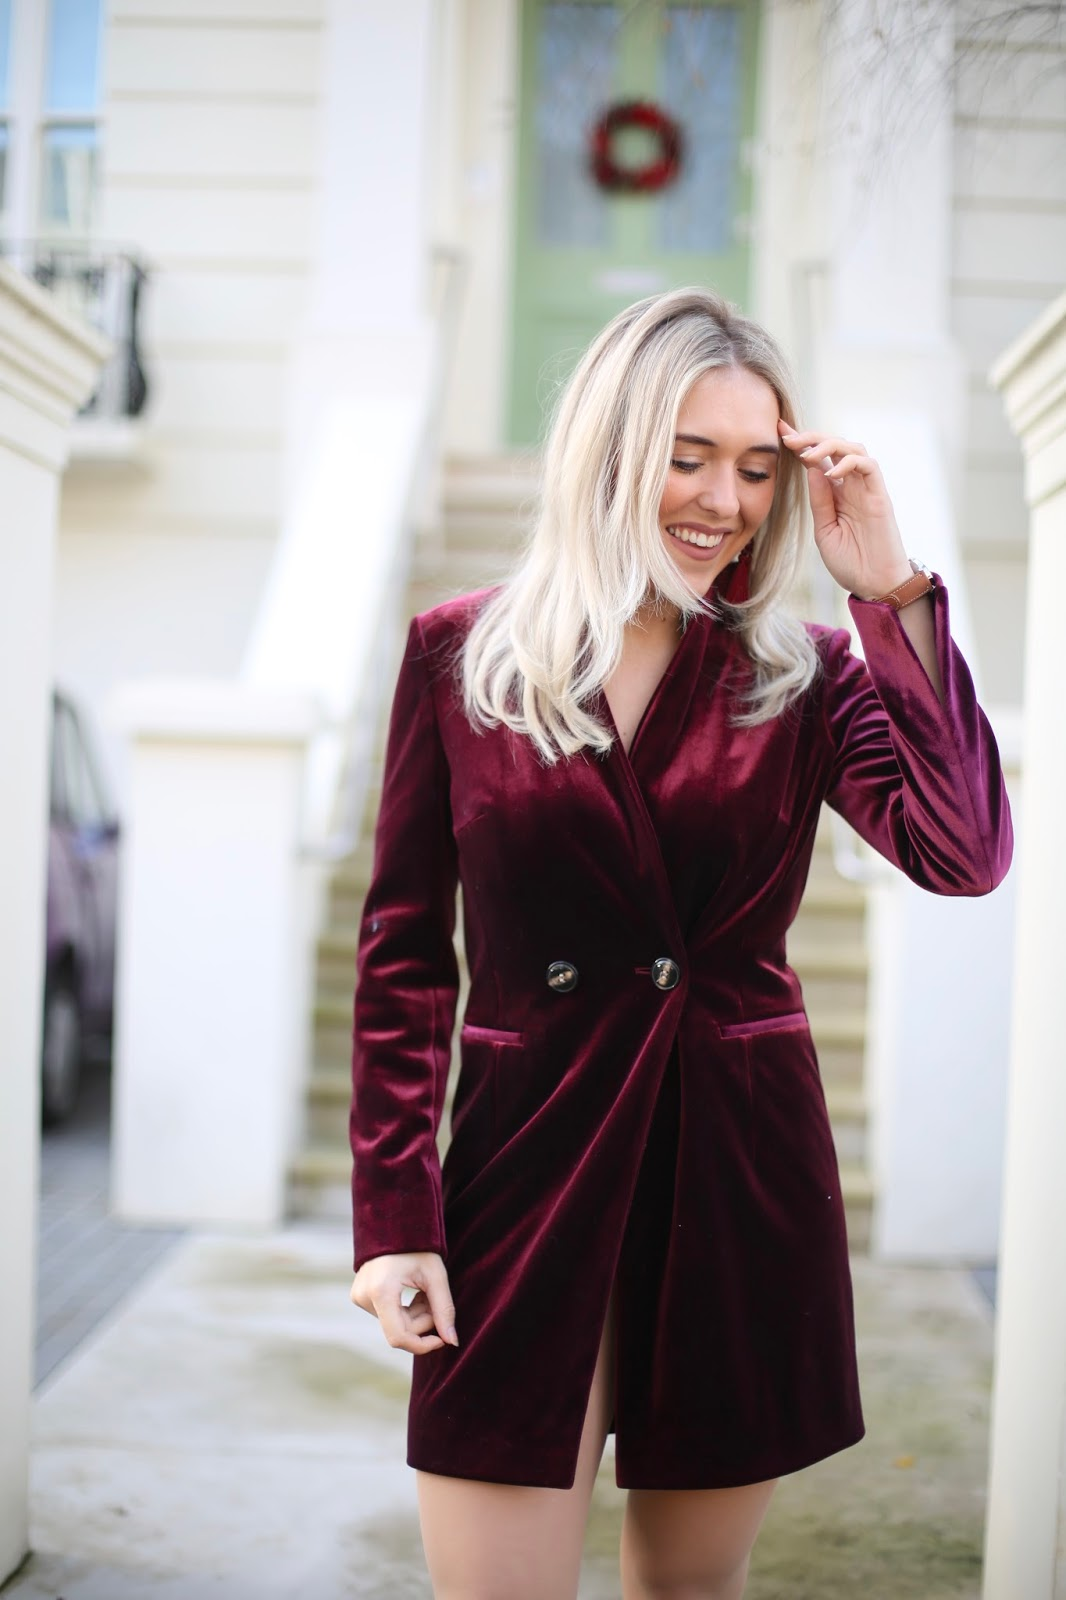 Topshop Velvet Blazer Dress